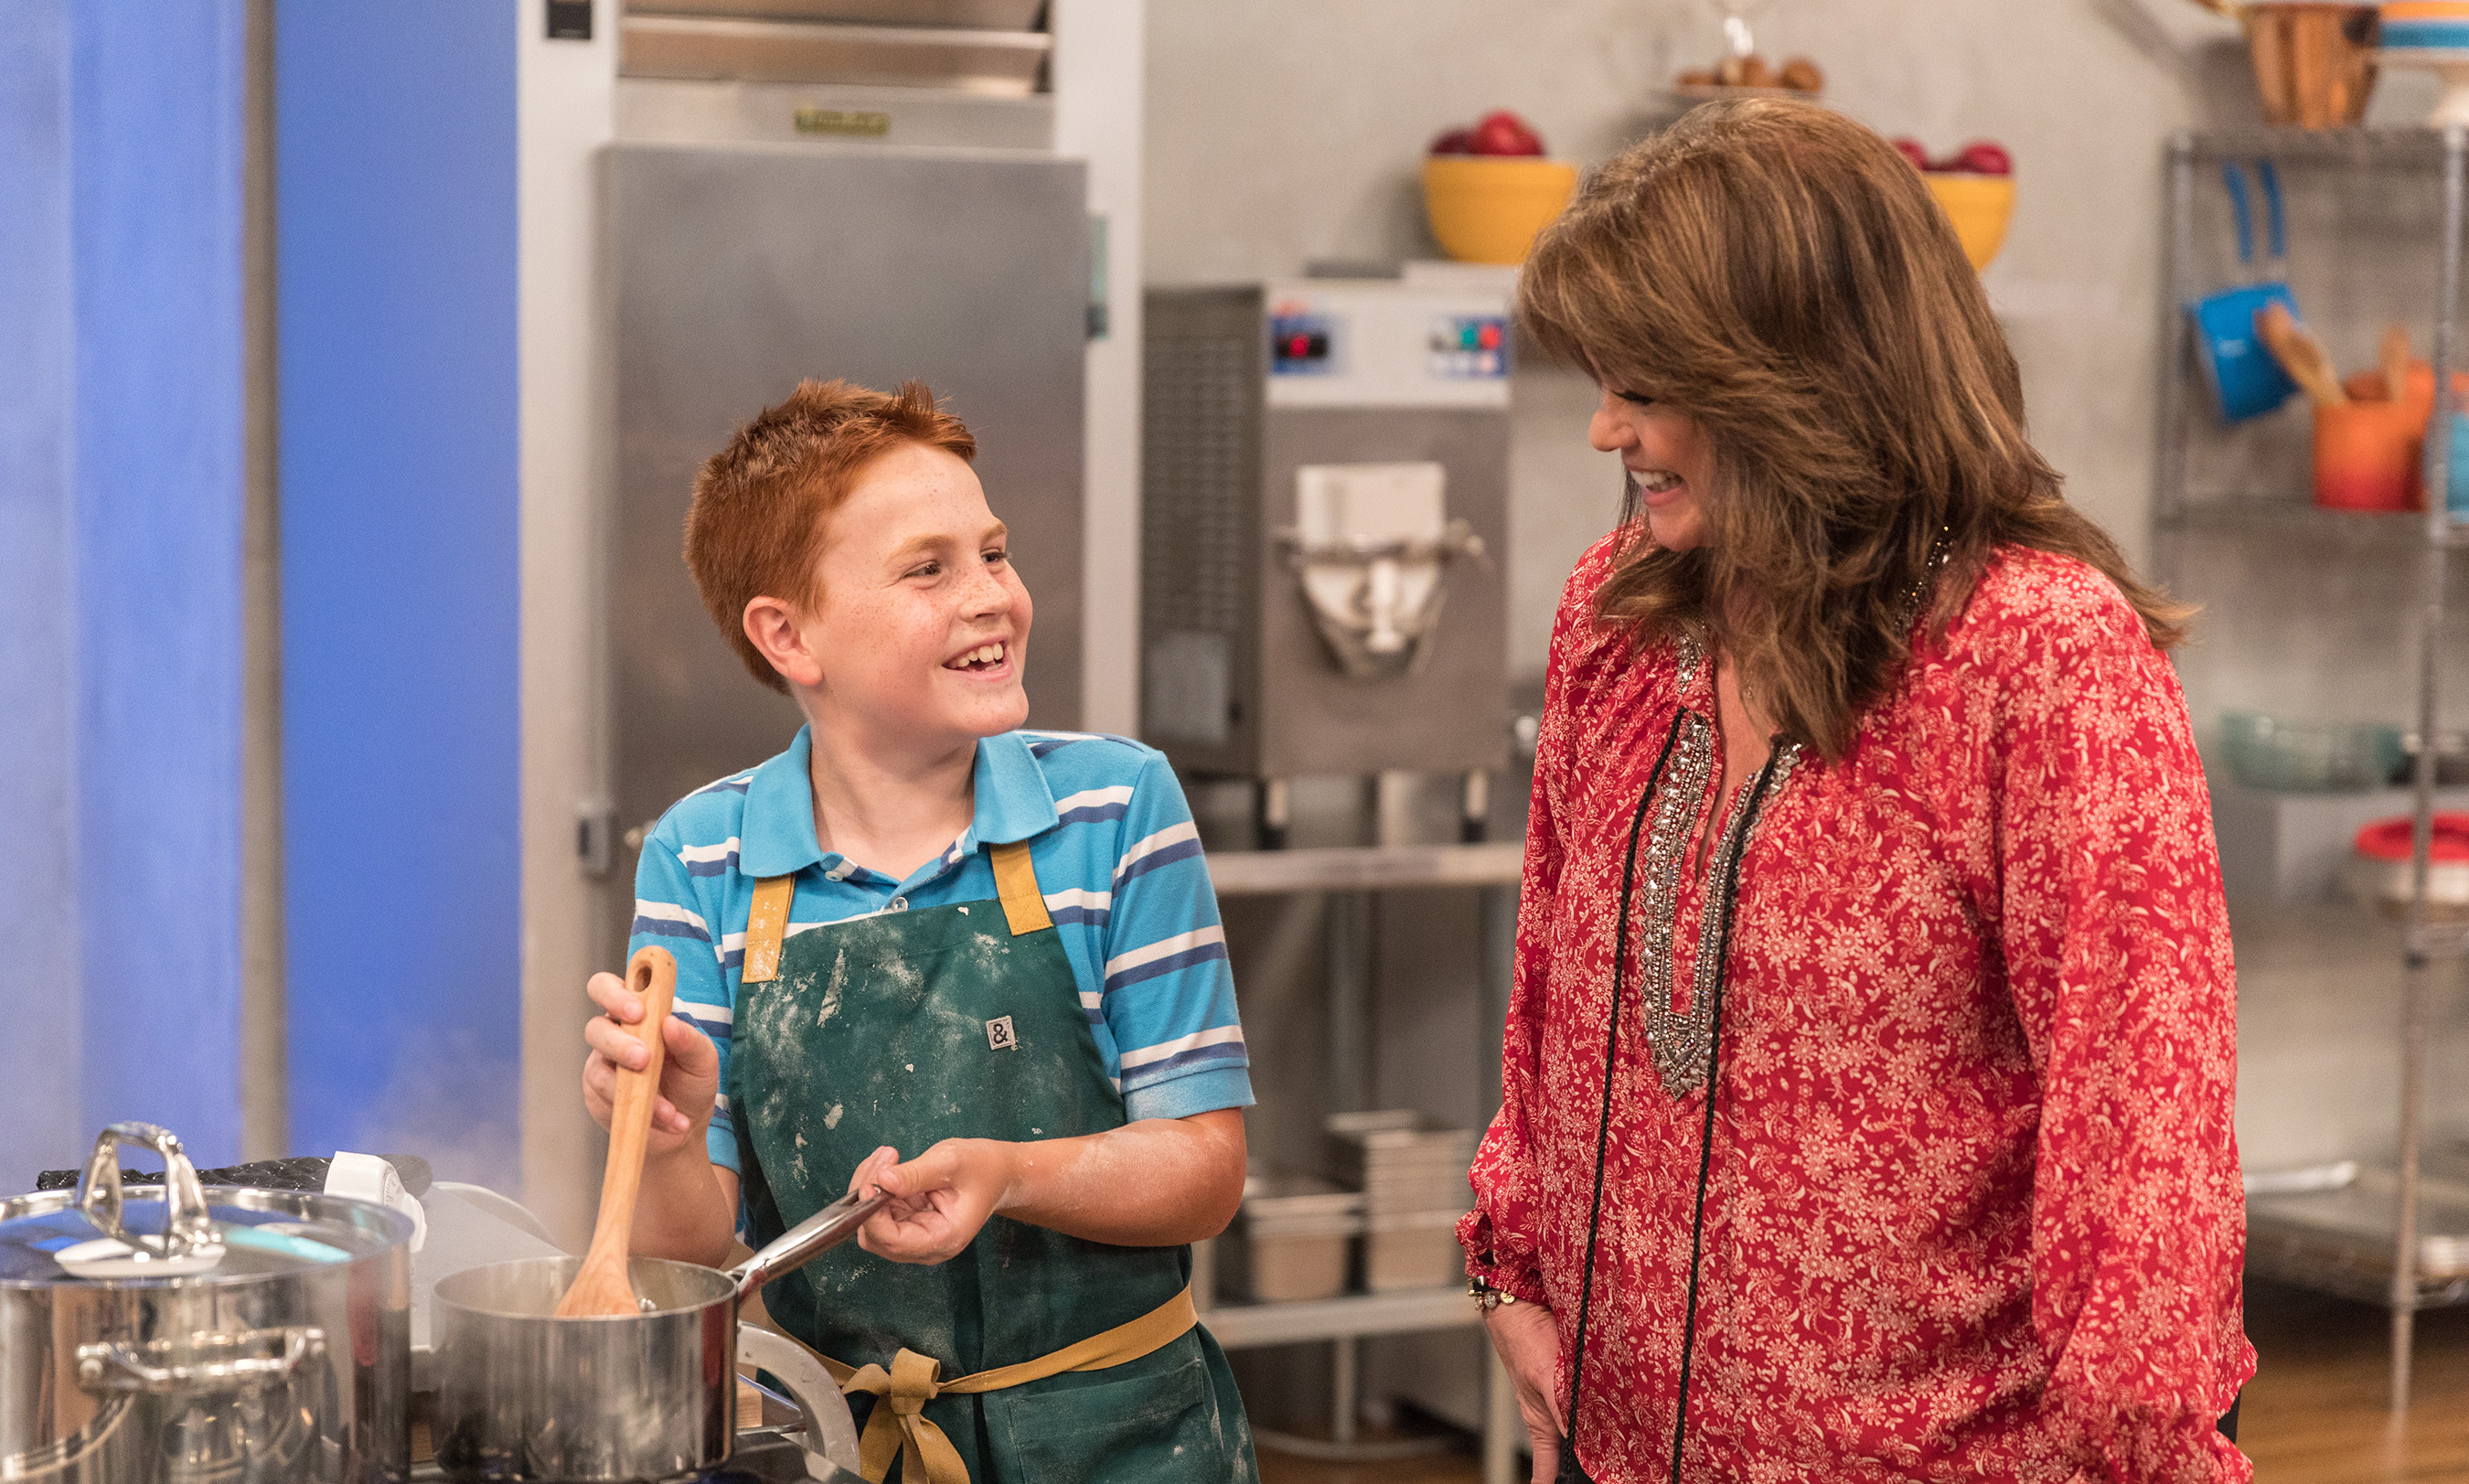 Valerie Bertinelli checks in on contestant on Food Network's Kids Baking Championship